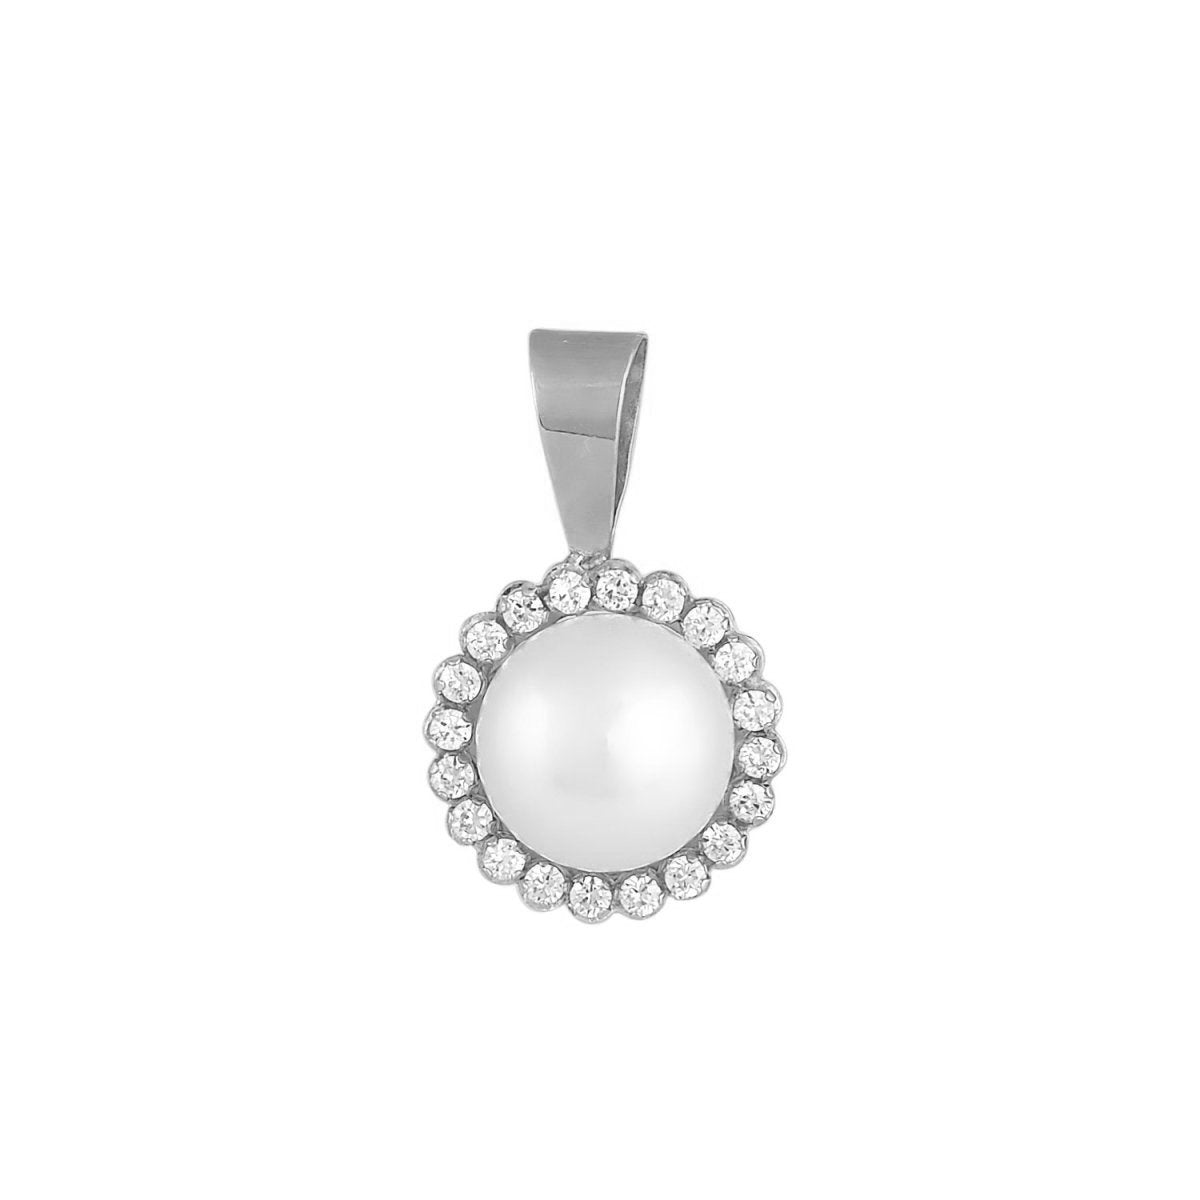 Motif MP56W White Gold K14 with Pearl and Zircon - Goldy Jewelry Store